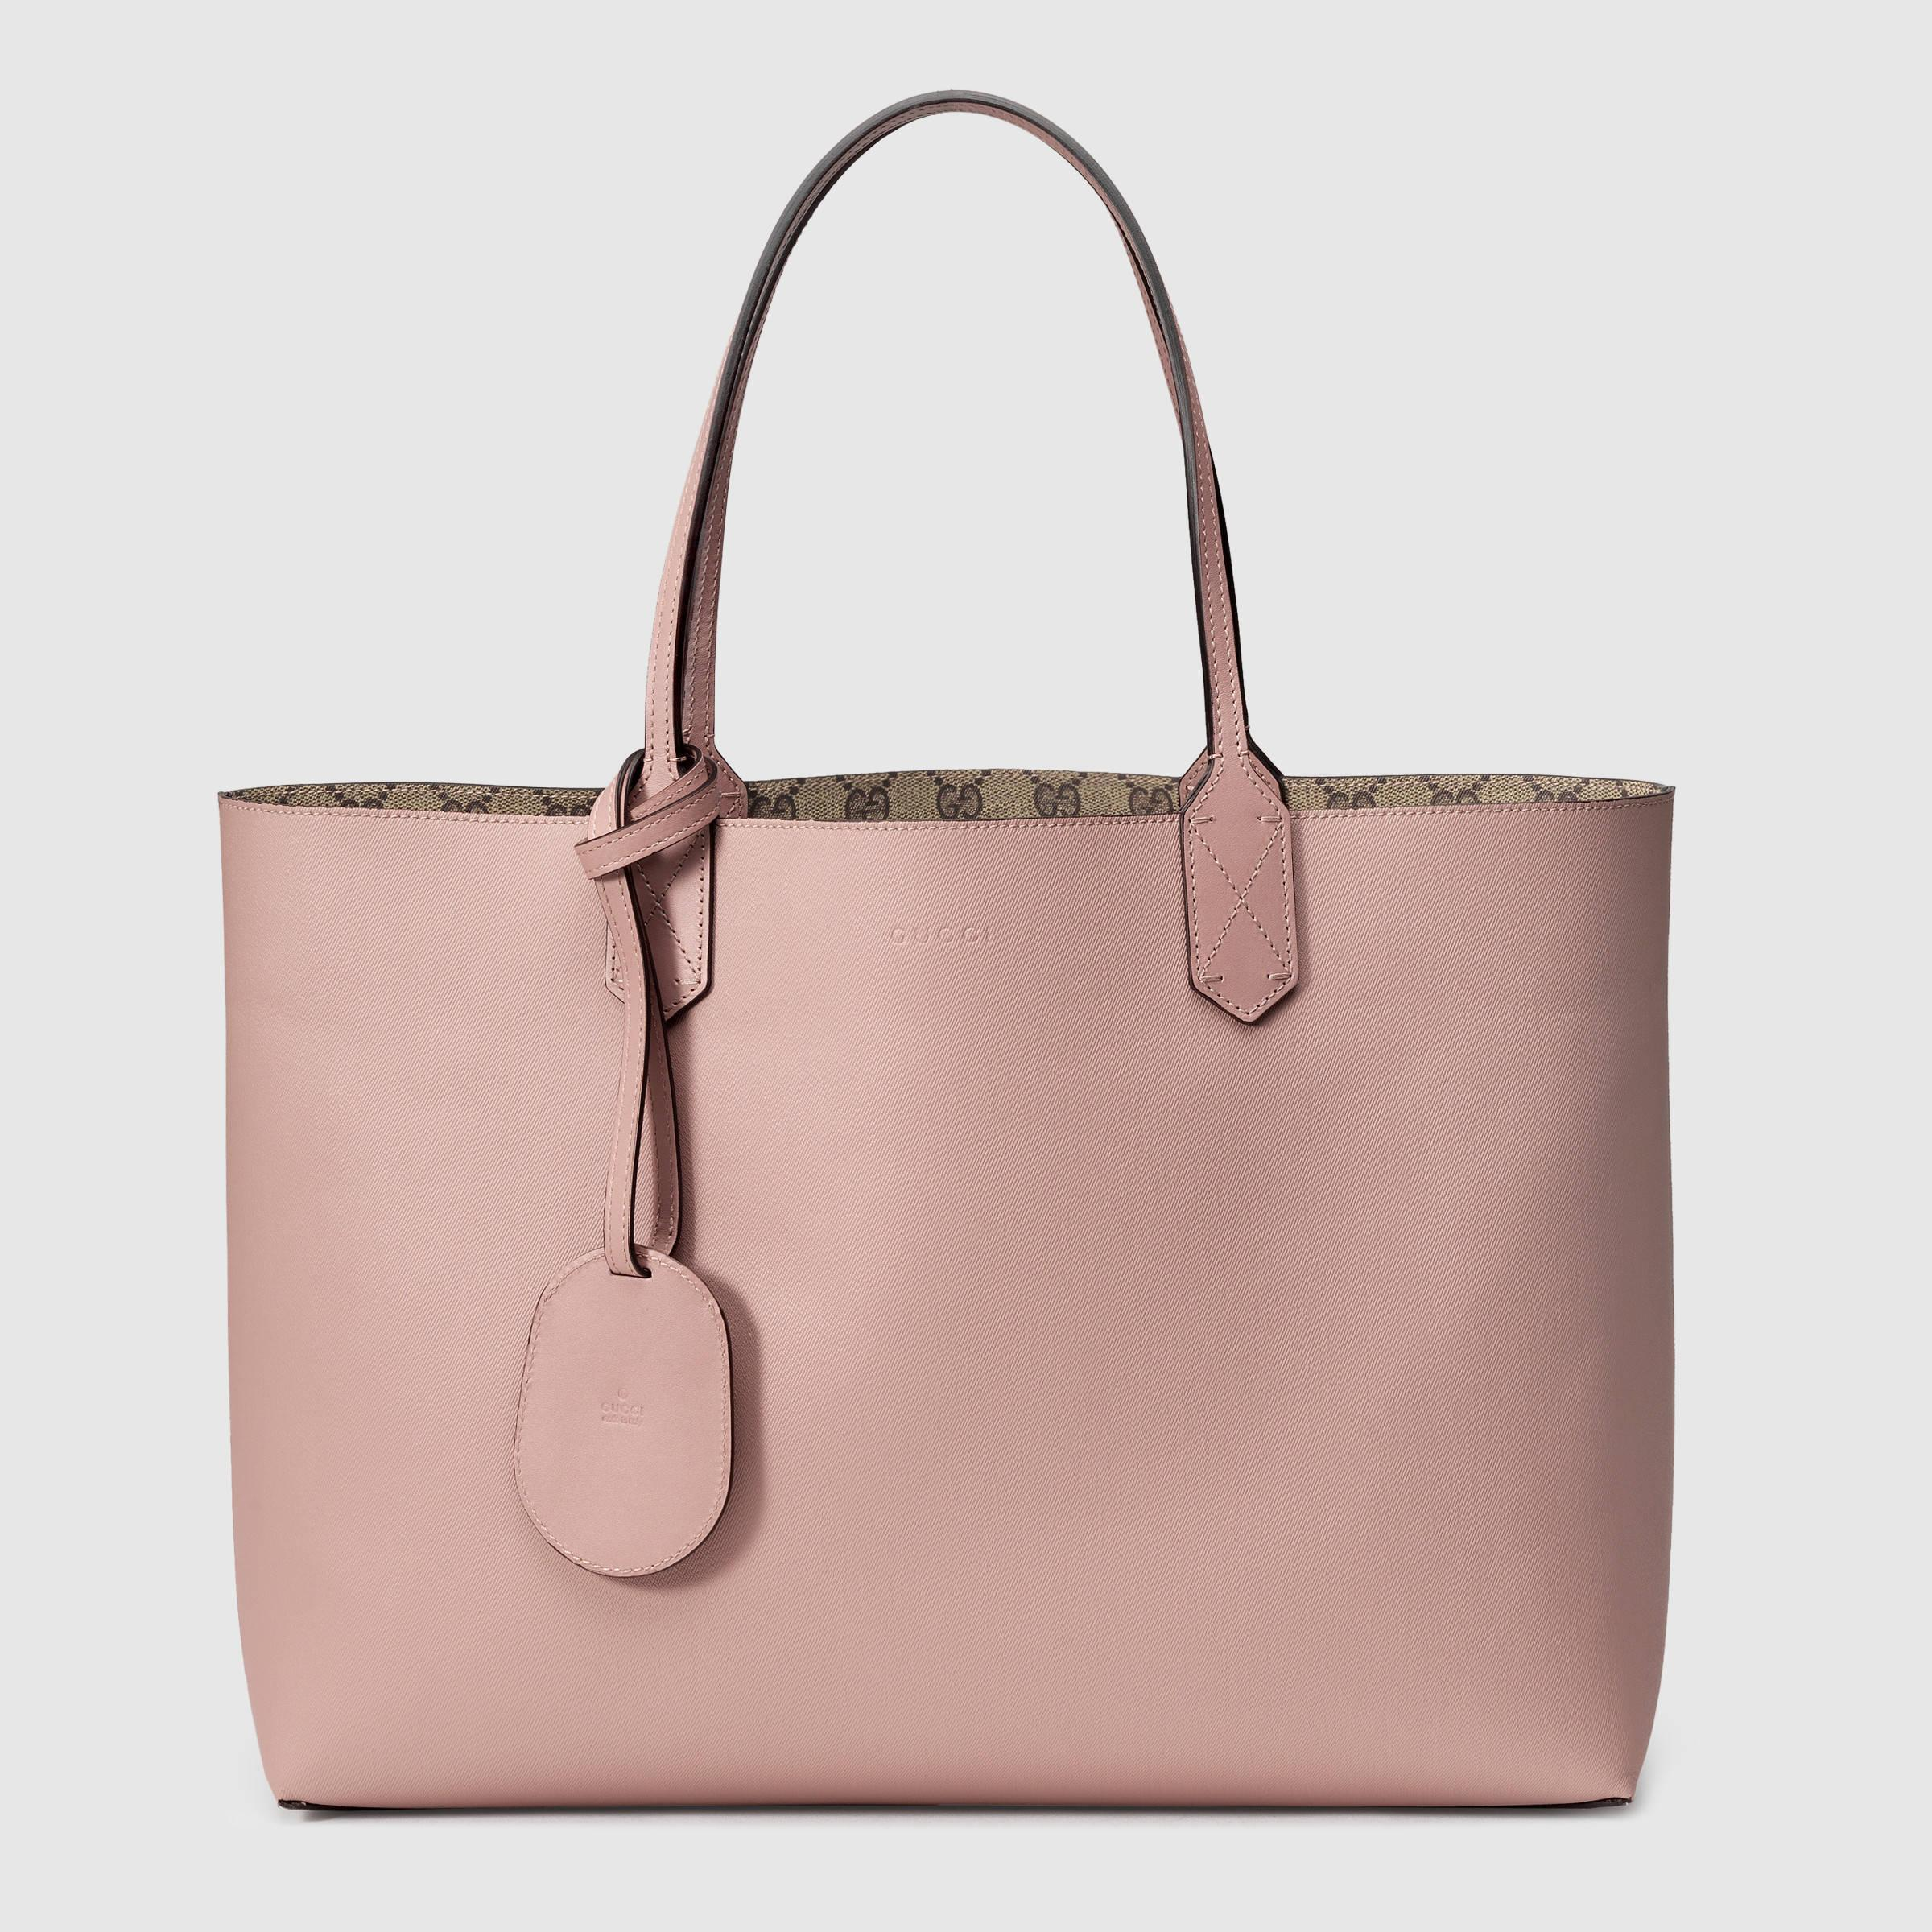 9f96a47c032e Lyst - Gucci Reversible Gg Leather Tote in Pink